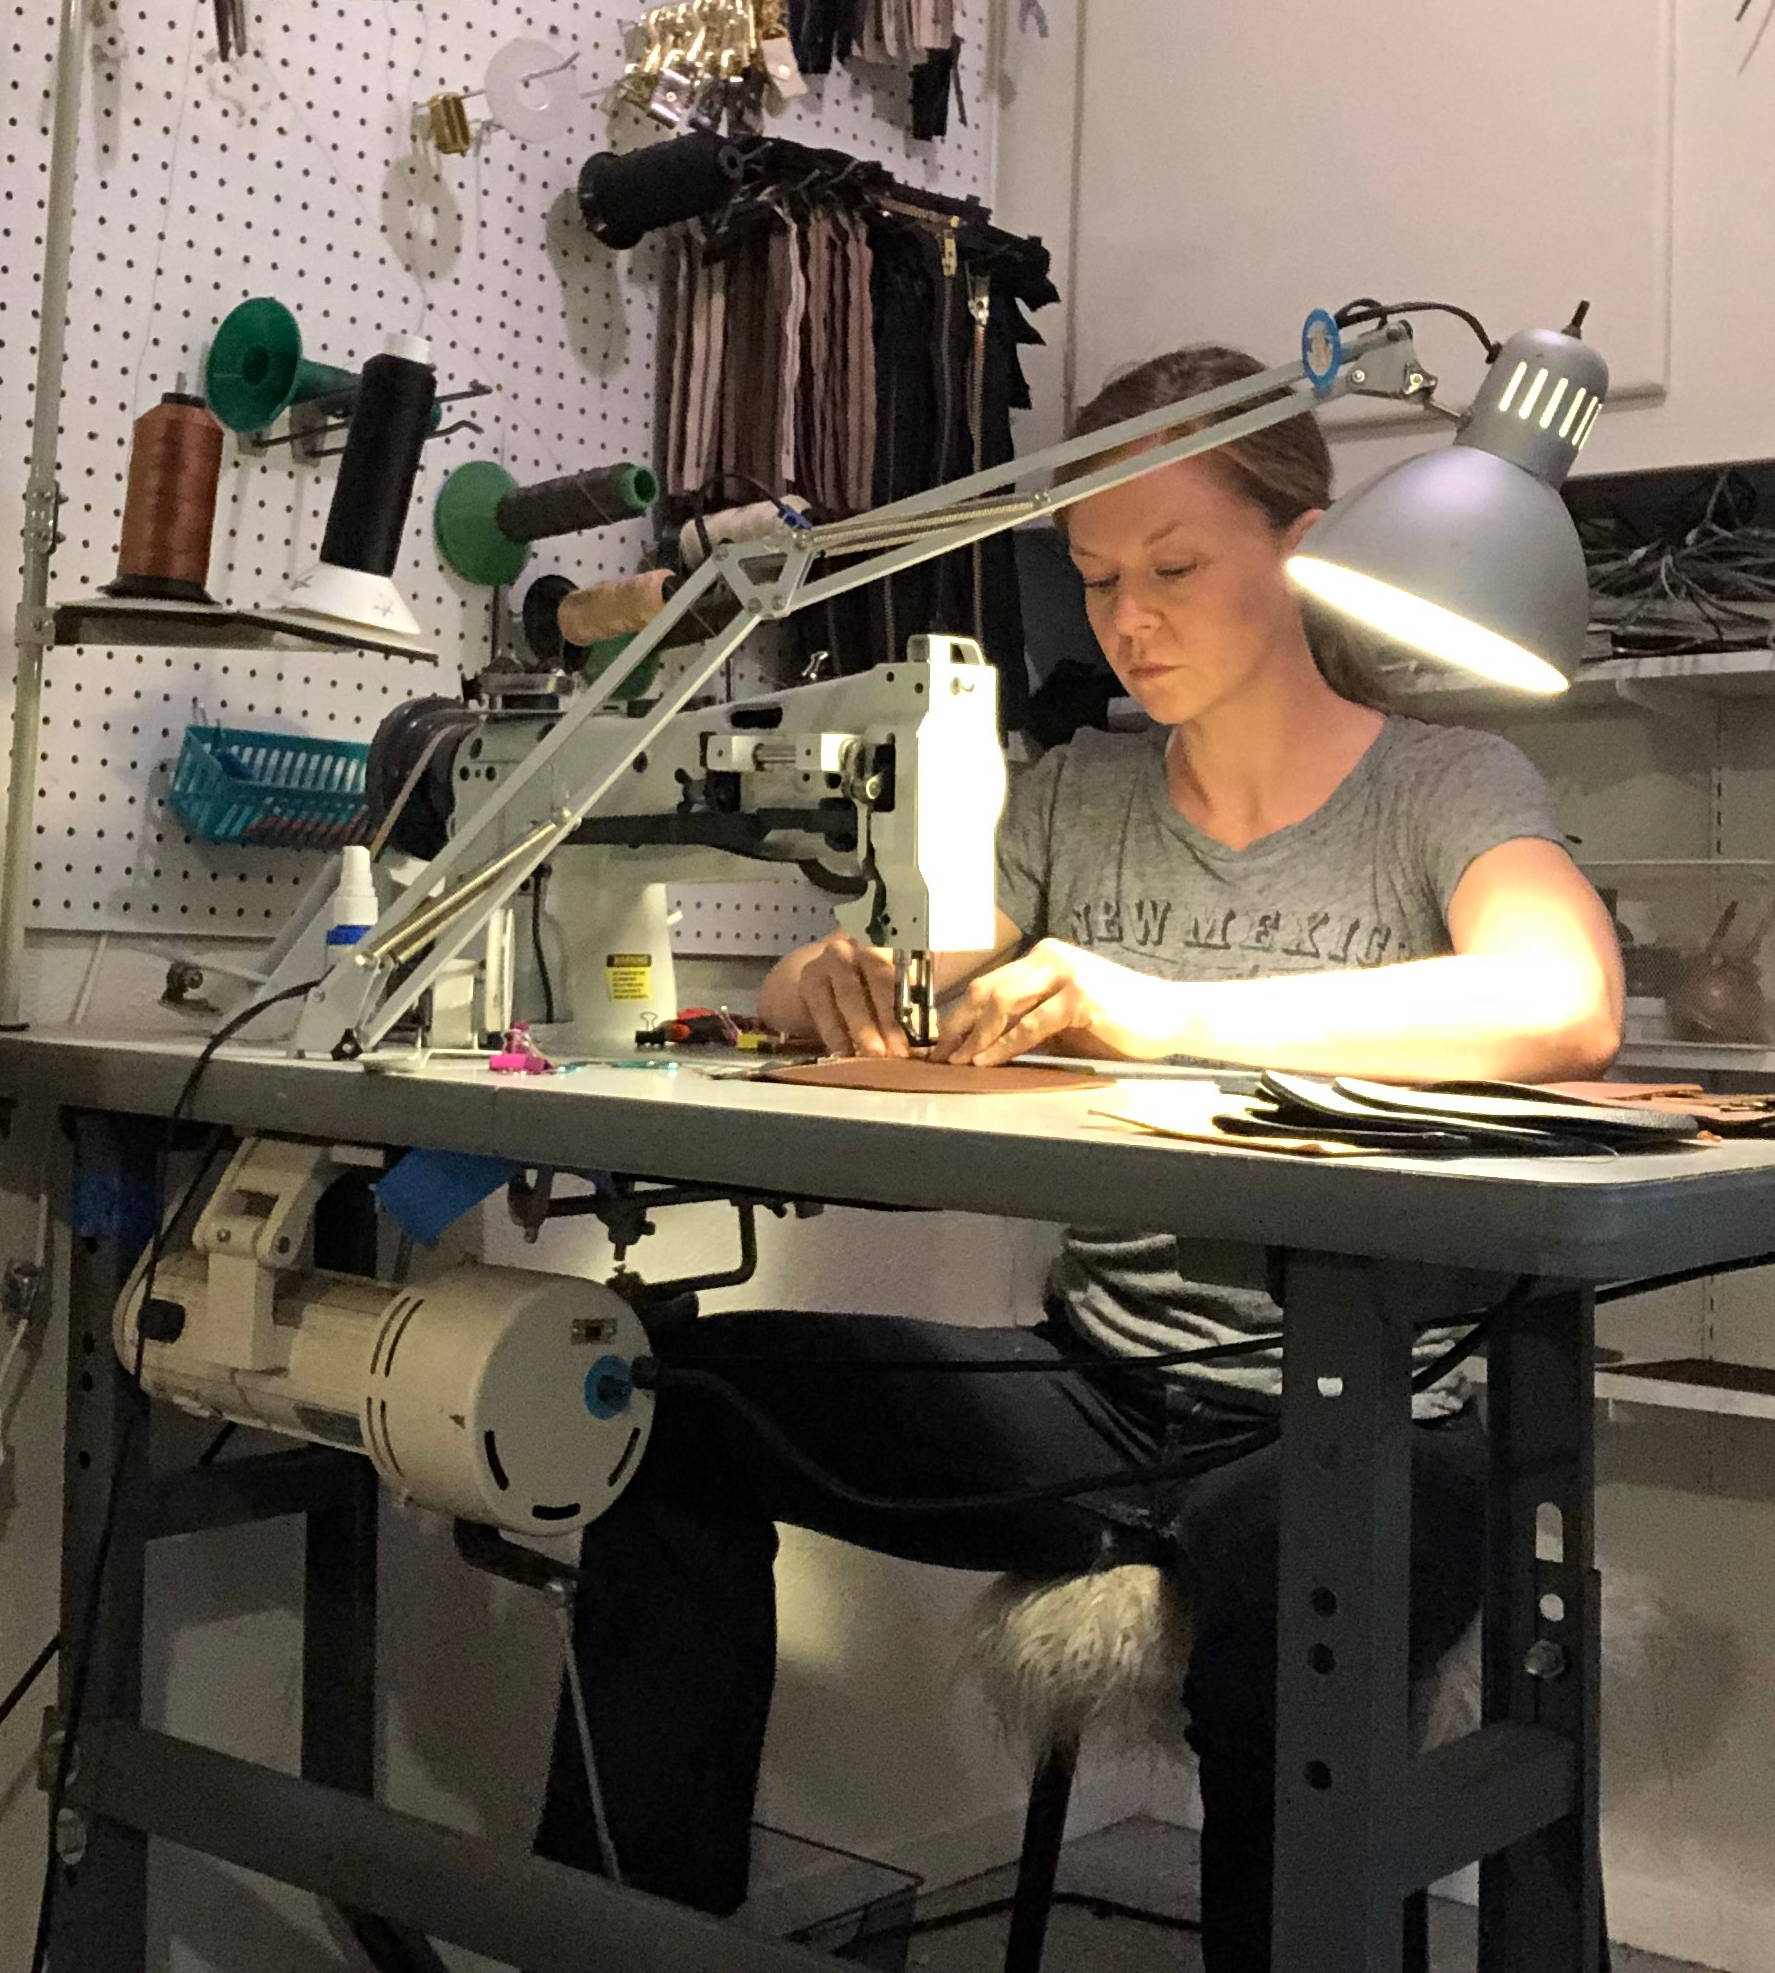 Hatton Henry Owner/Operator Vanessa Vaught at the Sewing Machine